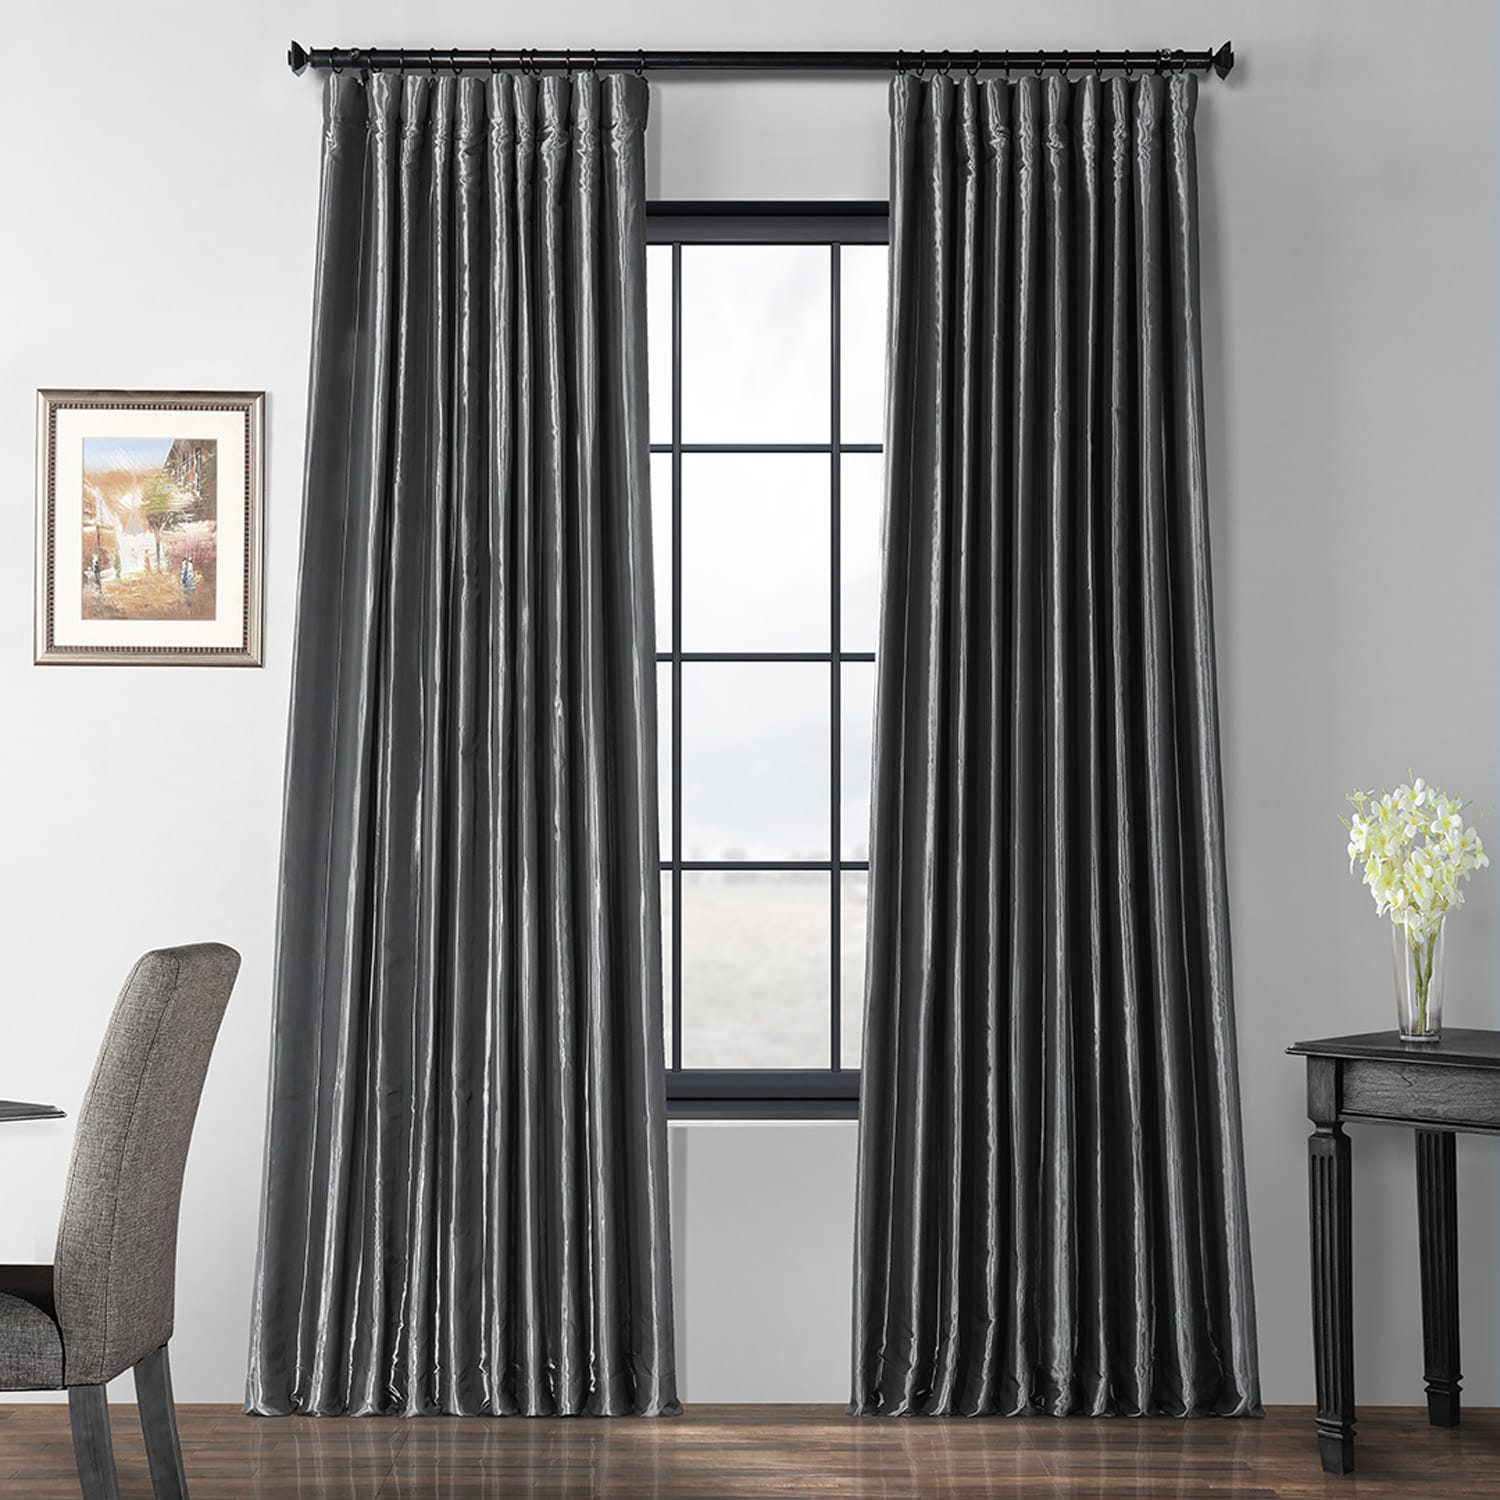 Burnished Hematite Blackout Extra Wide Faux Silk Taffeta Curtain